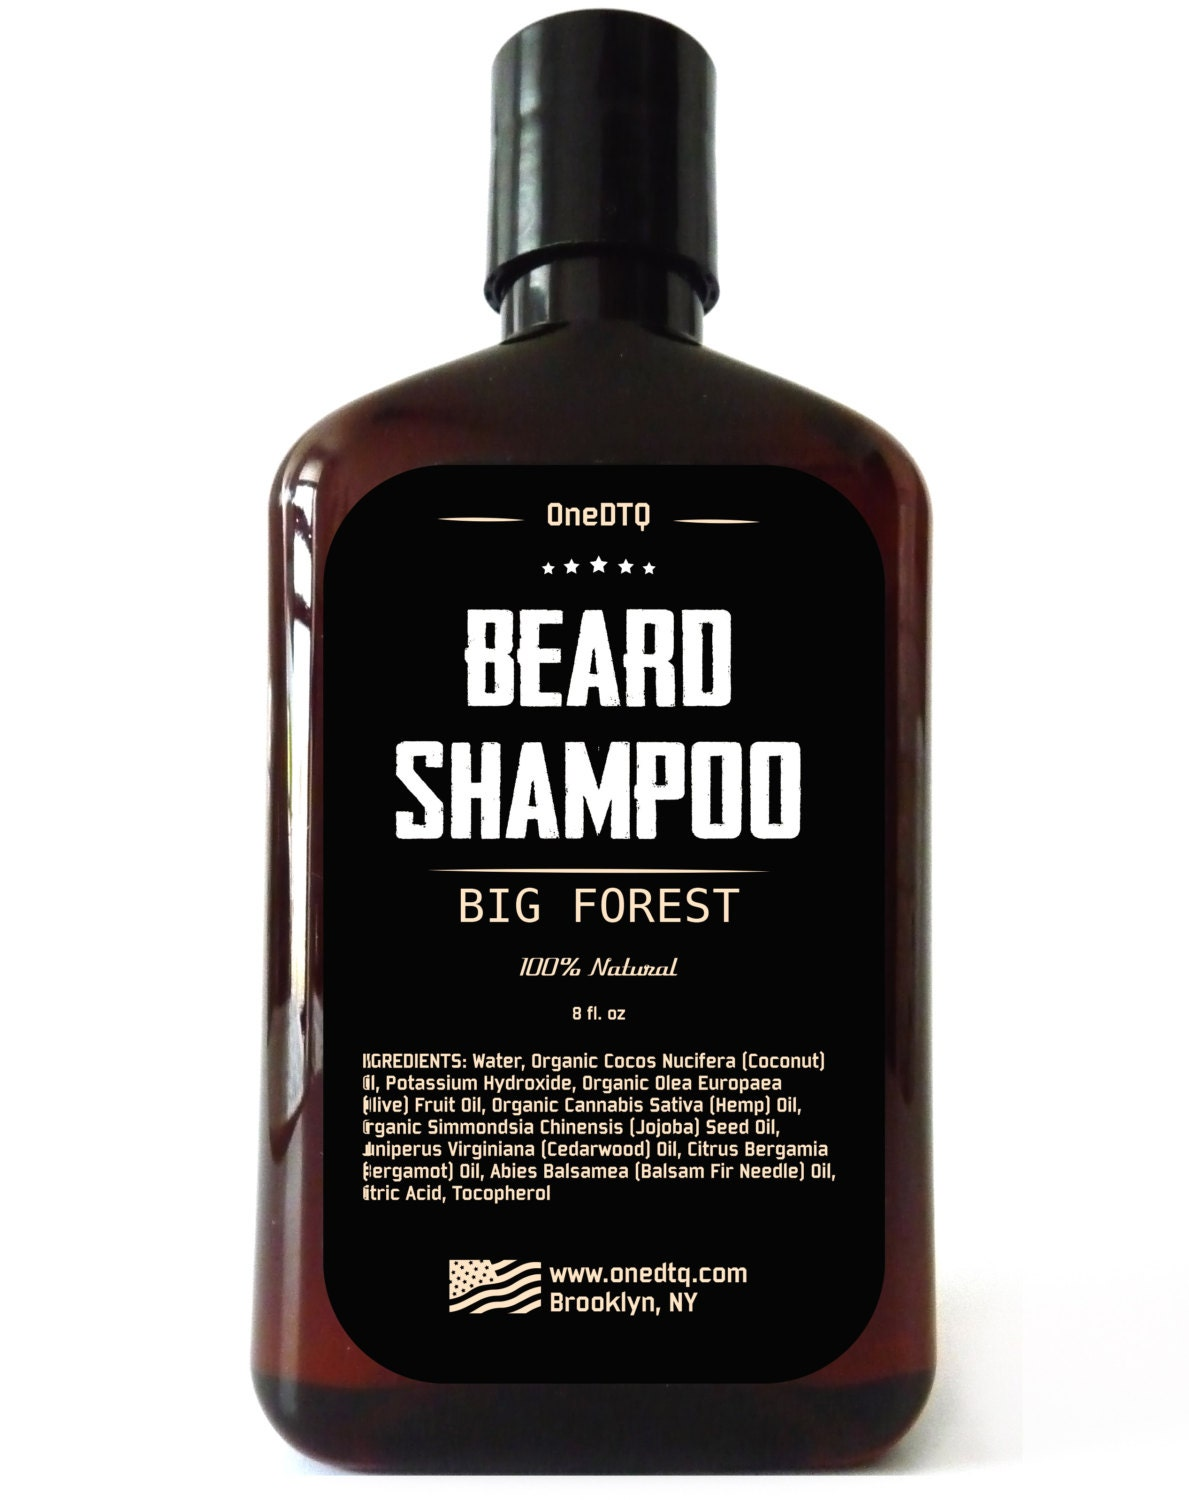 beard shampoo 100 natural beard grooming thoroughly by onedtq. Black Bedroom Furniture Sets. Home Design Ideas